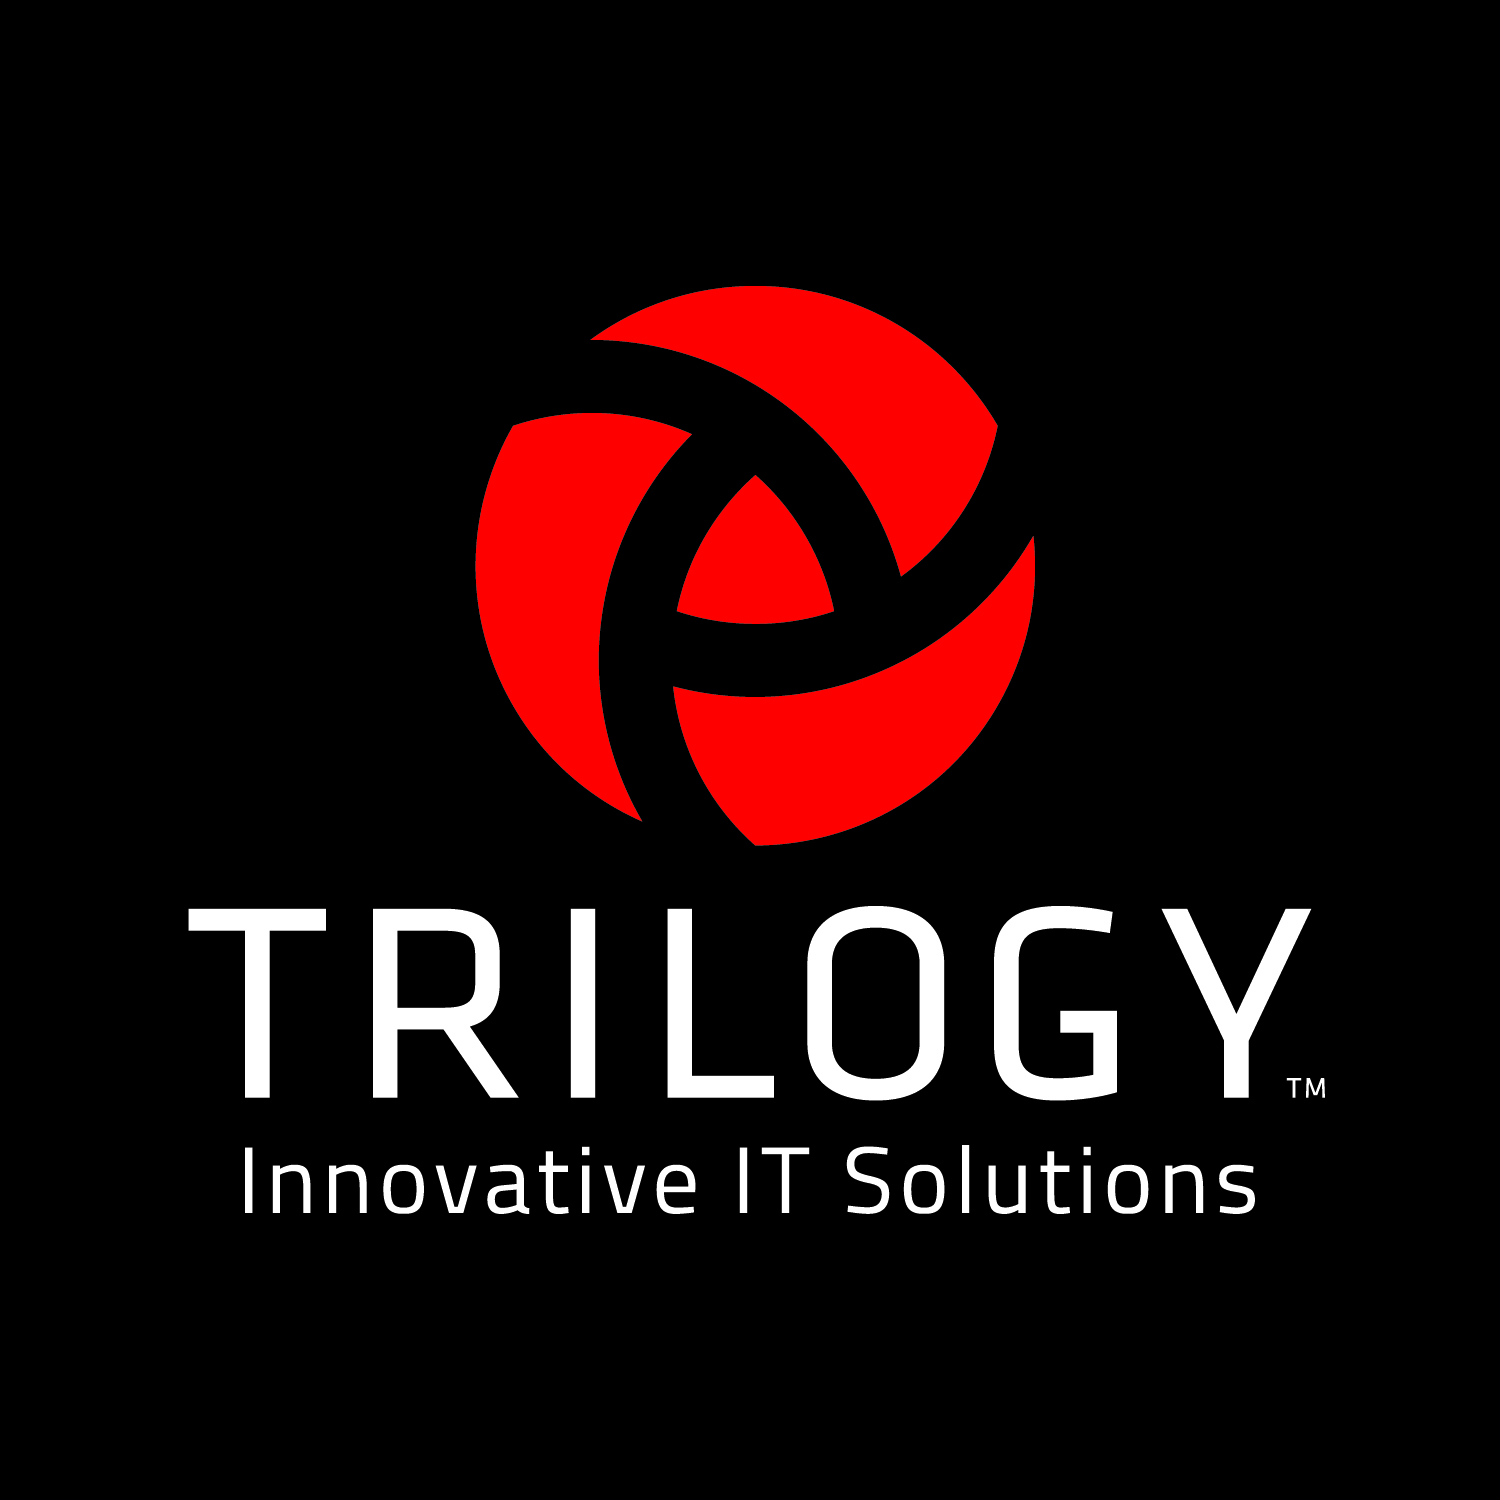 trilogy_vertical_tagline_square_on_black